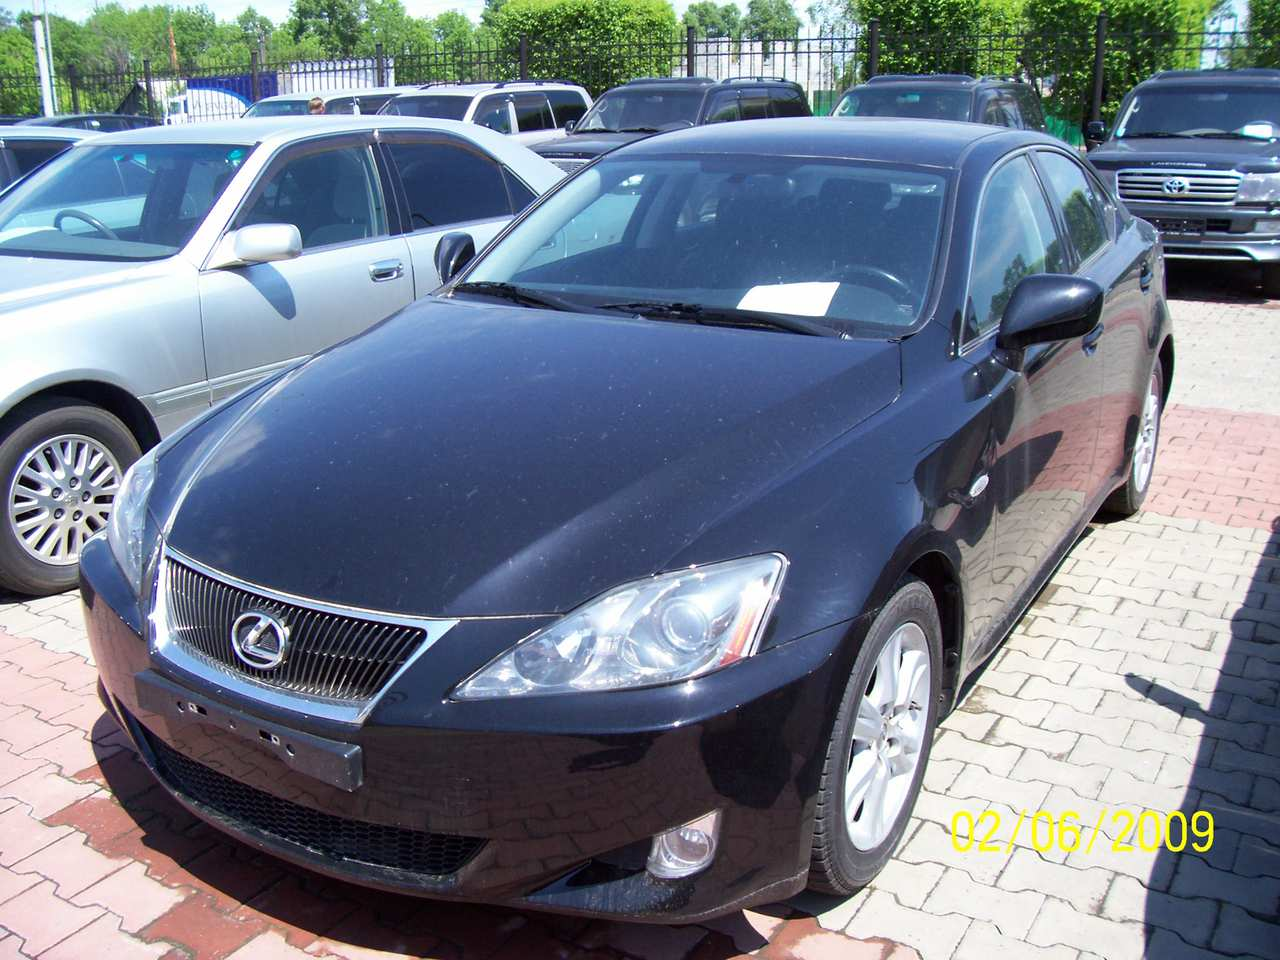 used 2005 lexus is250 photos 2500cc gasoline fr or rr automatic for sale. Black Bedroom Furniture Sets. Home Design Ideas